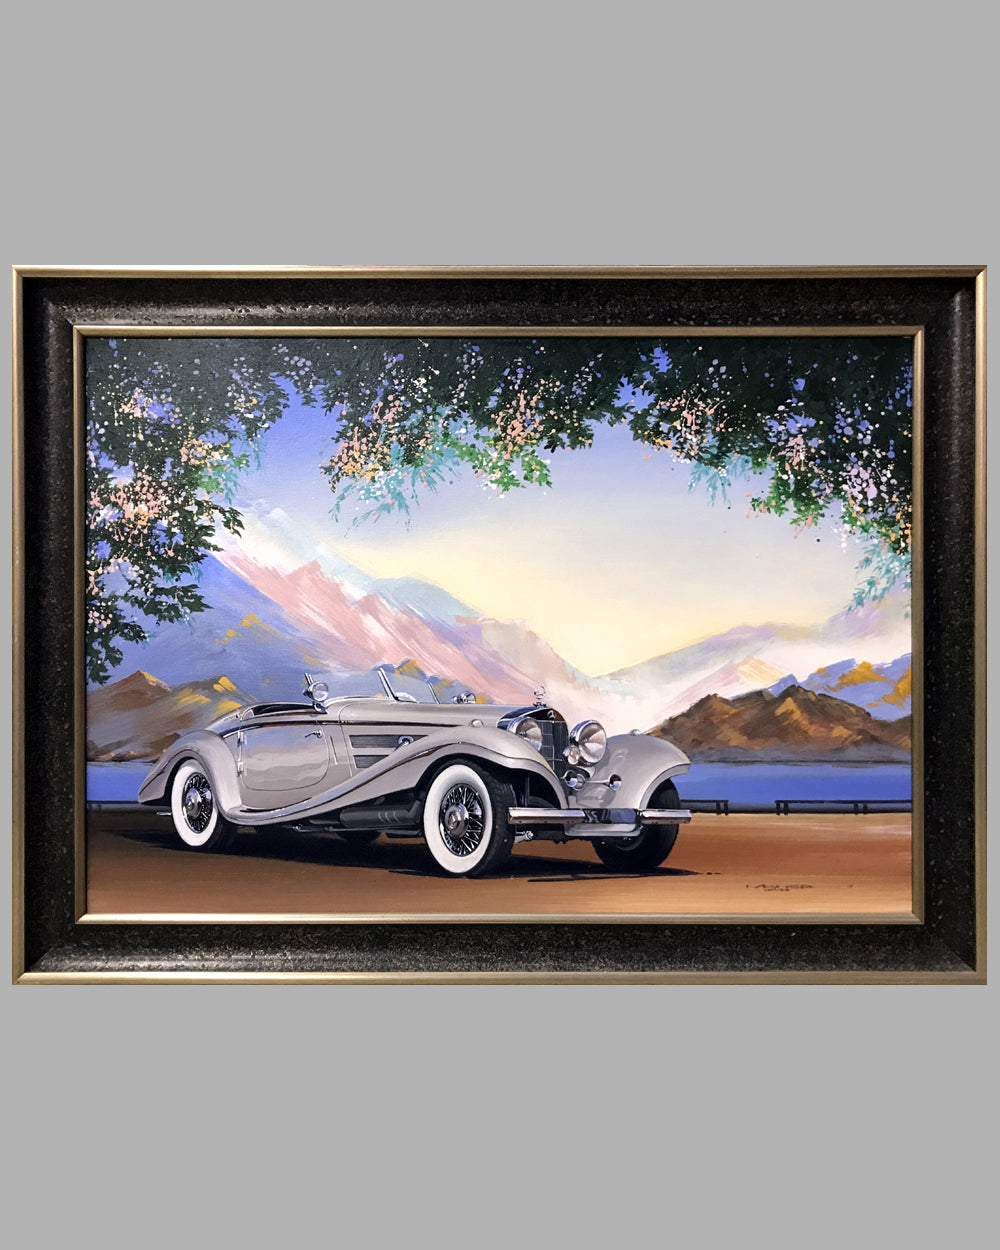 Mercedes Benz 500K acrylic on canvas painting by Charles Maher